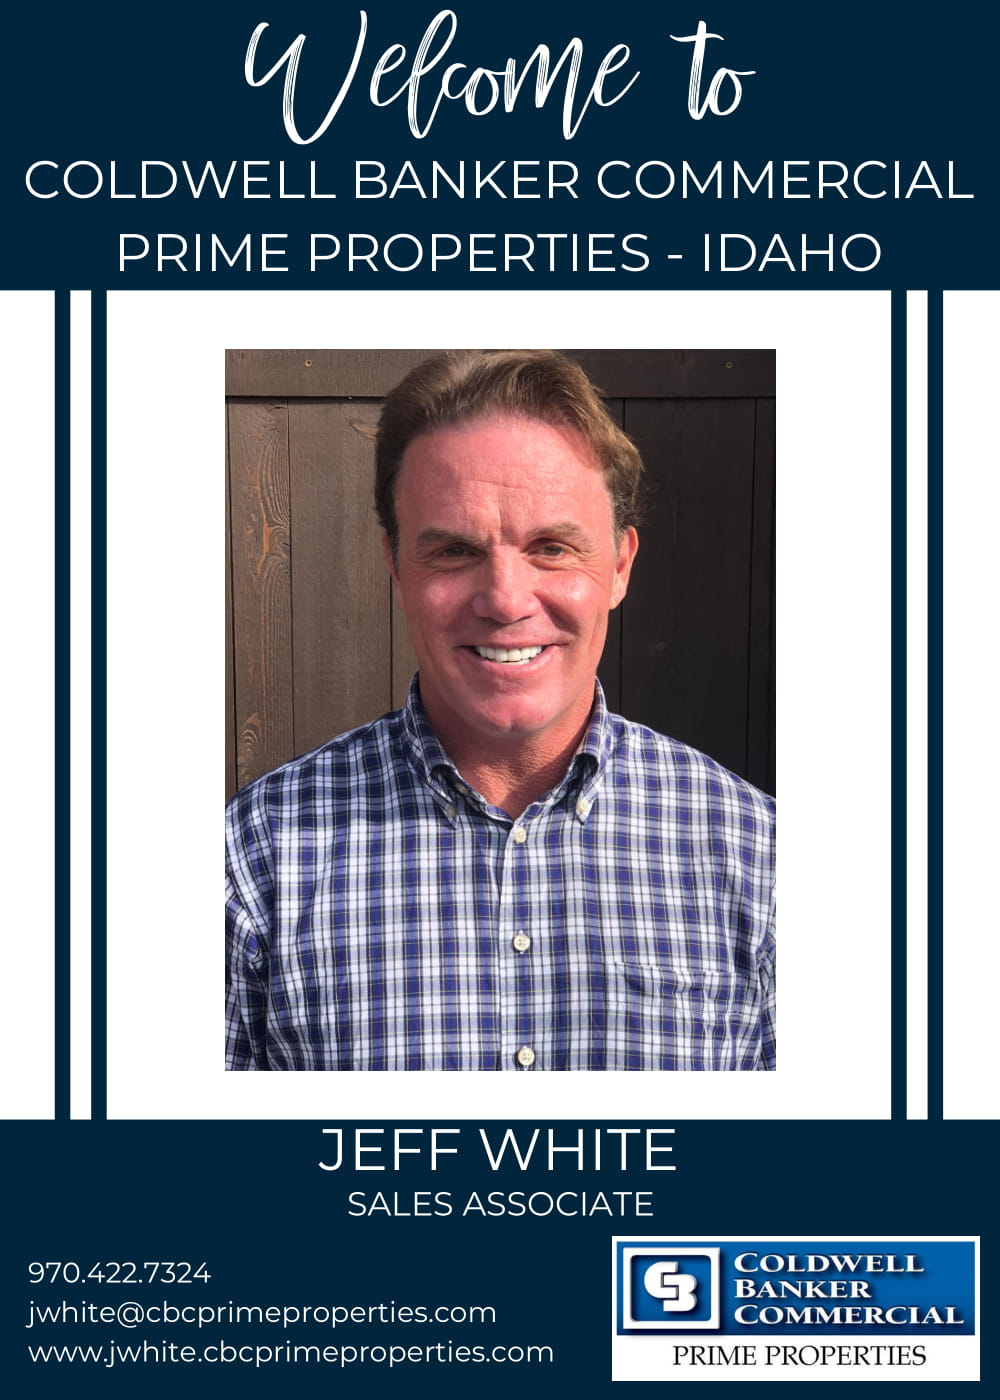 We are really excited to welcome Jeff White 'Whitey' to our Coldwell Banker family! Main Photo